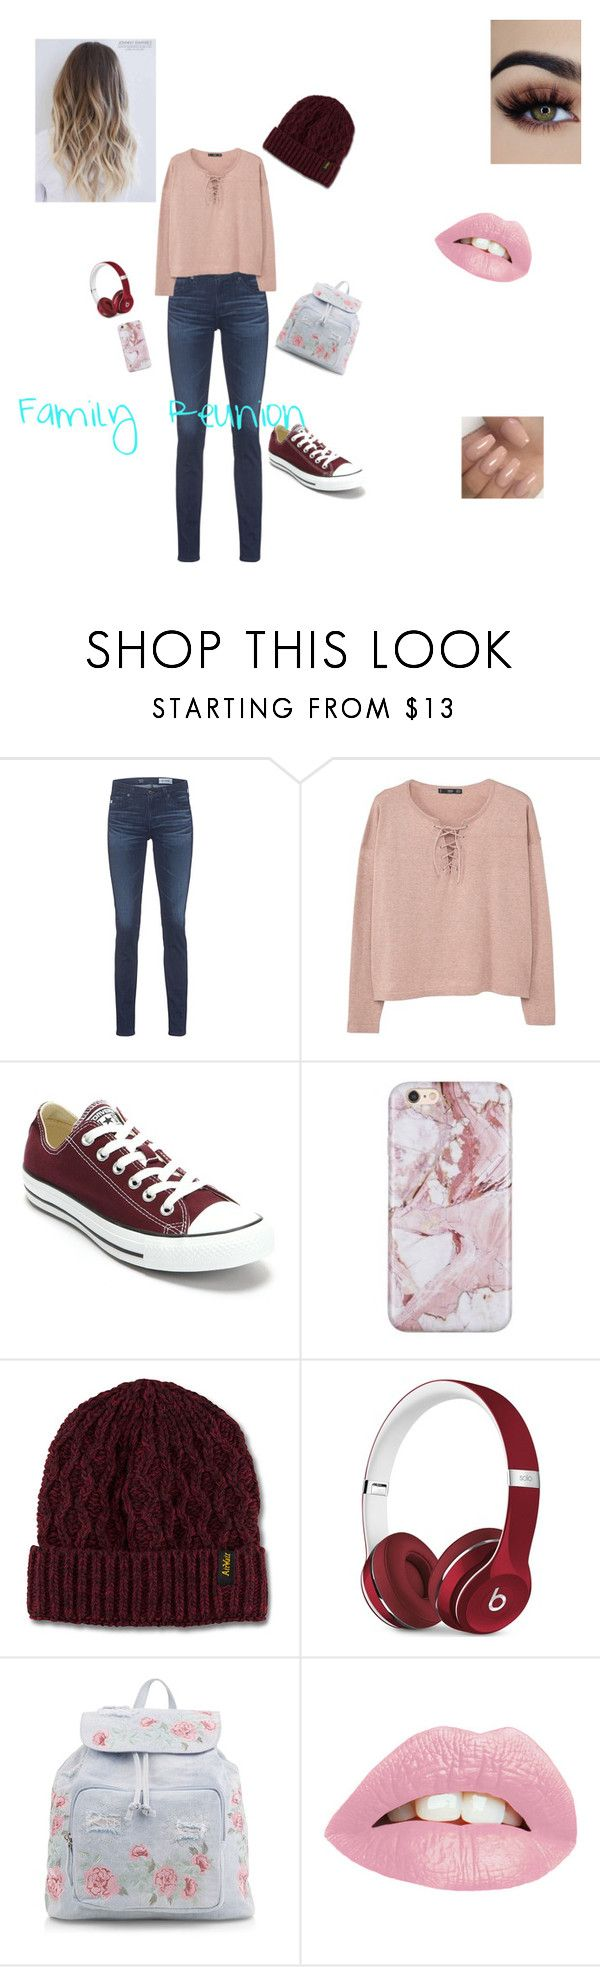 """""""Family Reunion"""" by janellwood on Polyvore featuring AG Adriano Goldschmied, MANGO, Converse, Dr. Martens, Beats by Dr. Dre and New Look"""